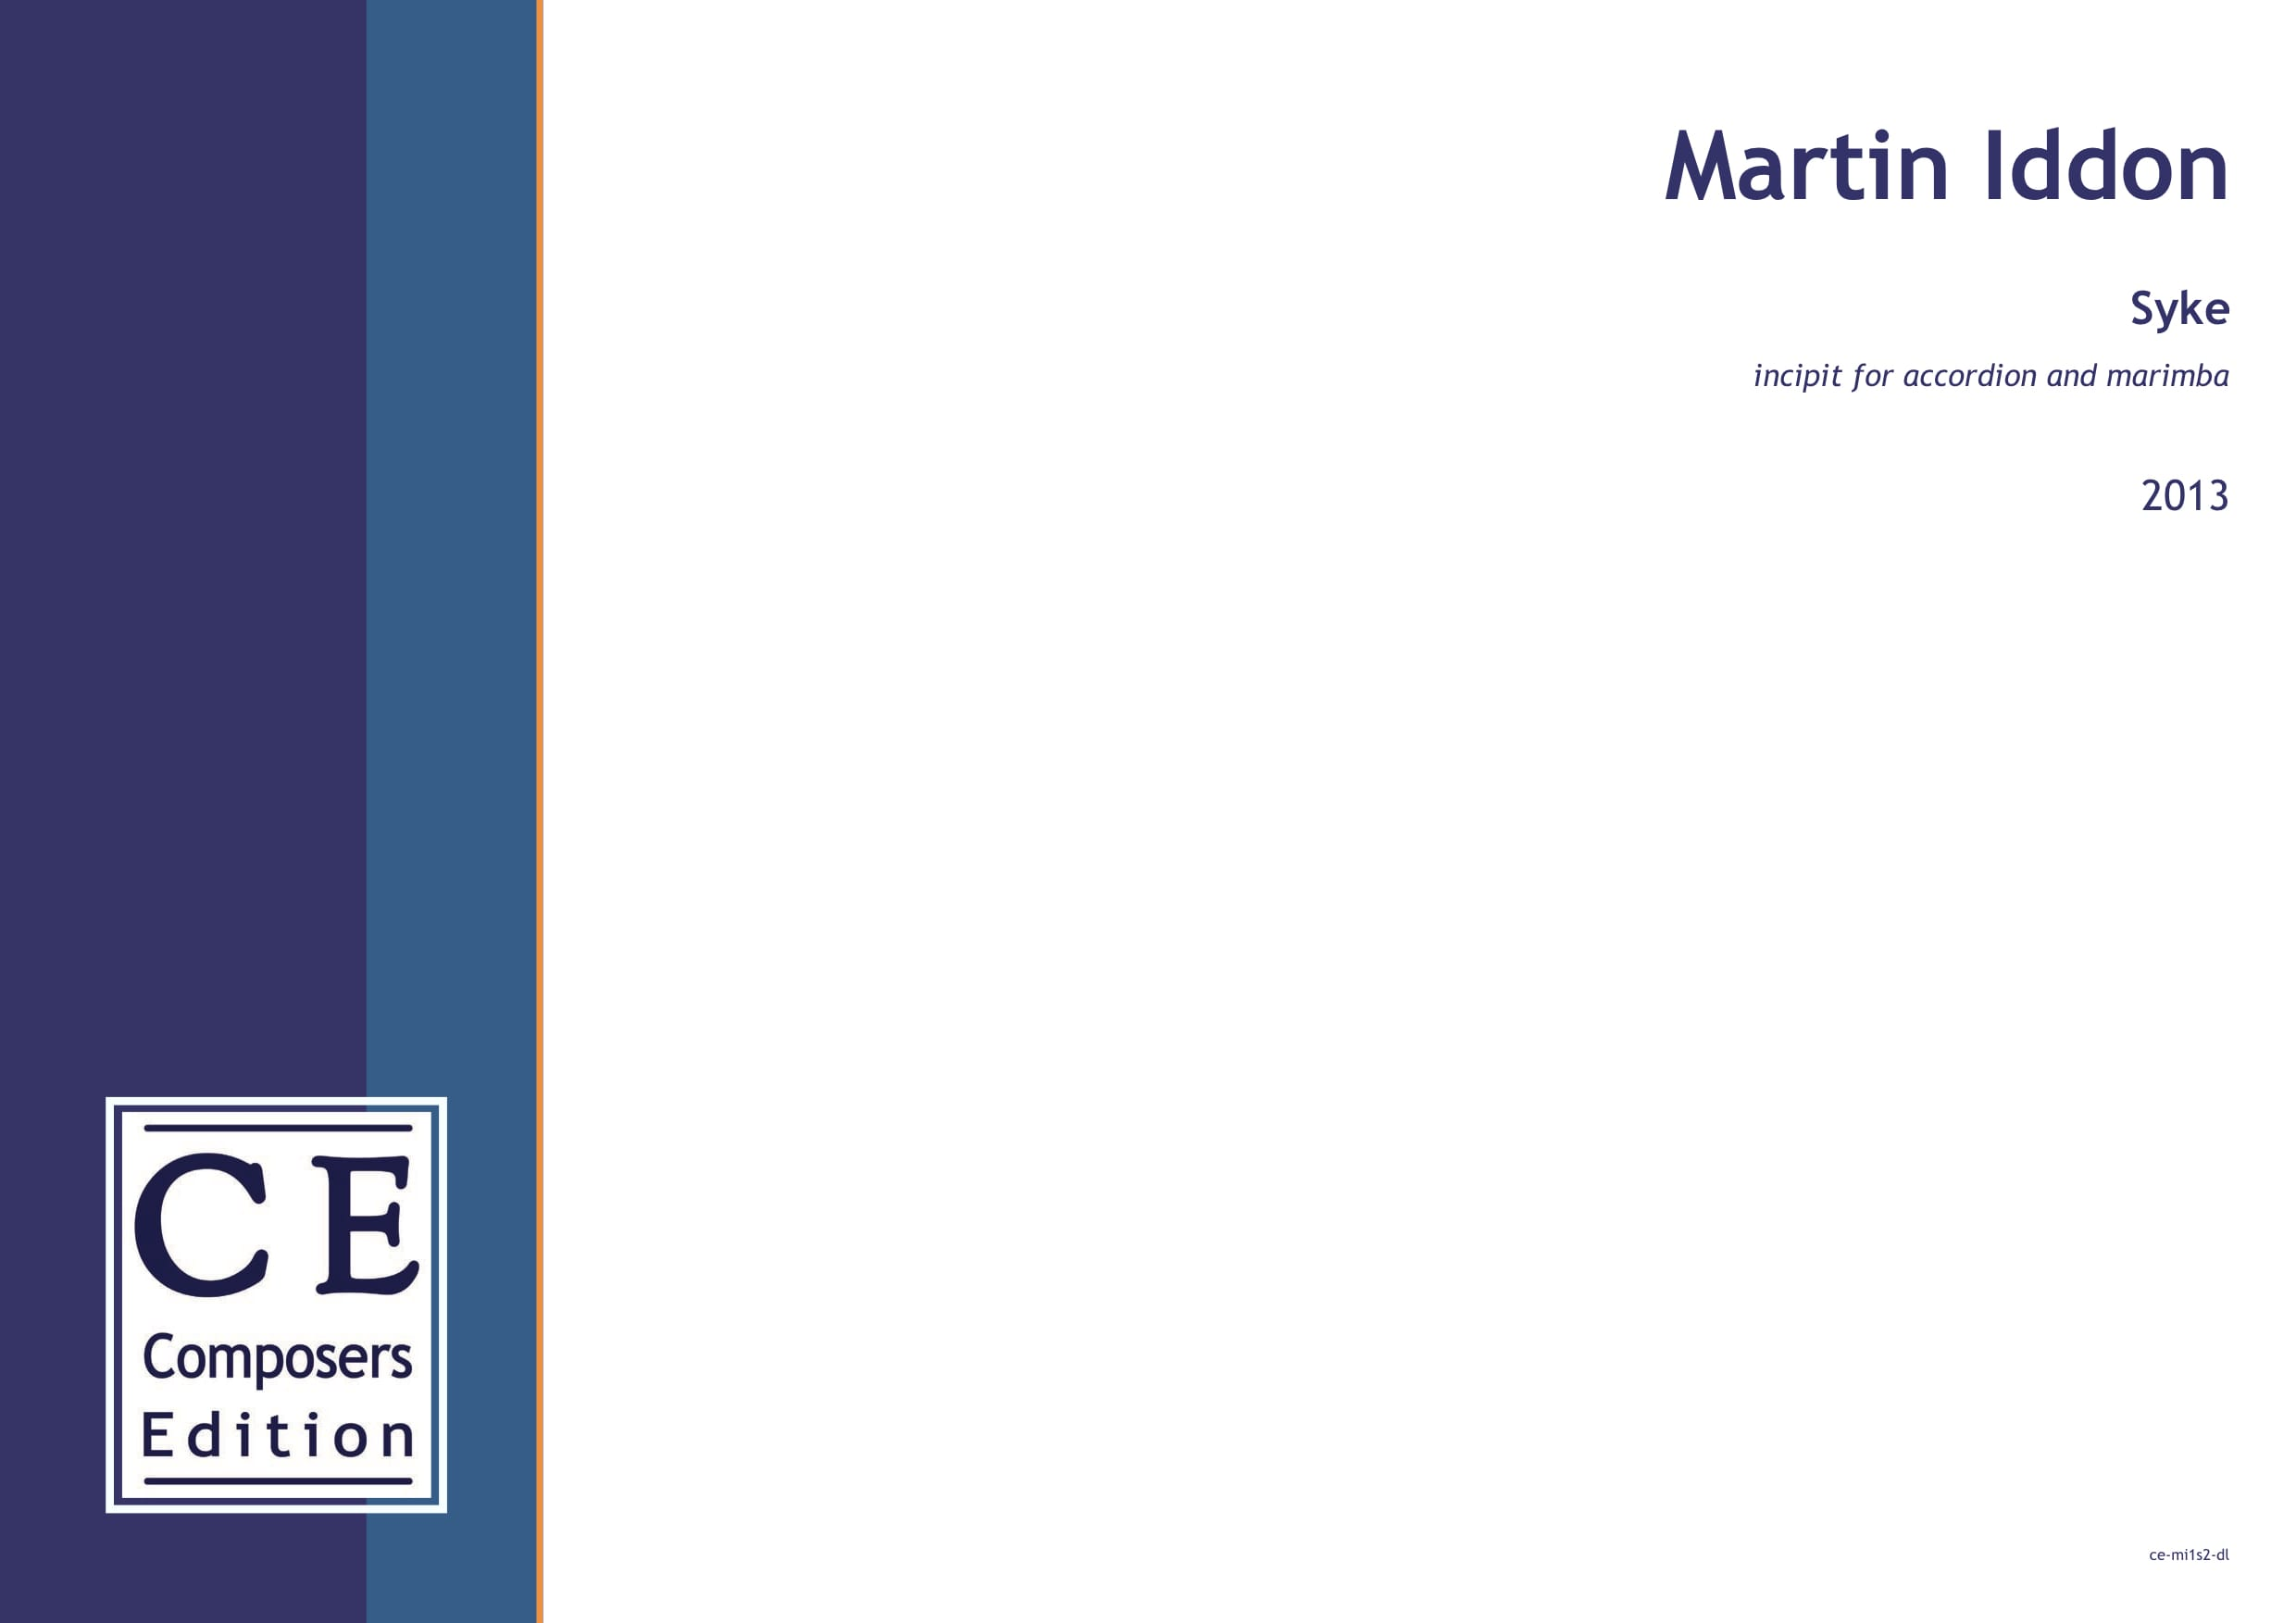 Martin Iddon: Syke incipit for accordion and mariba